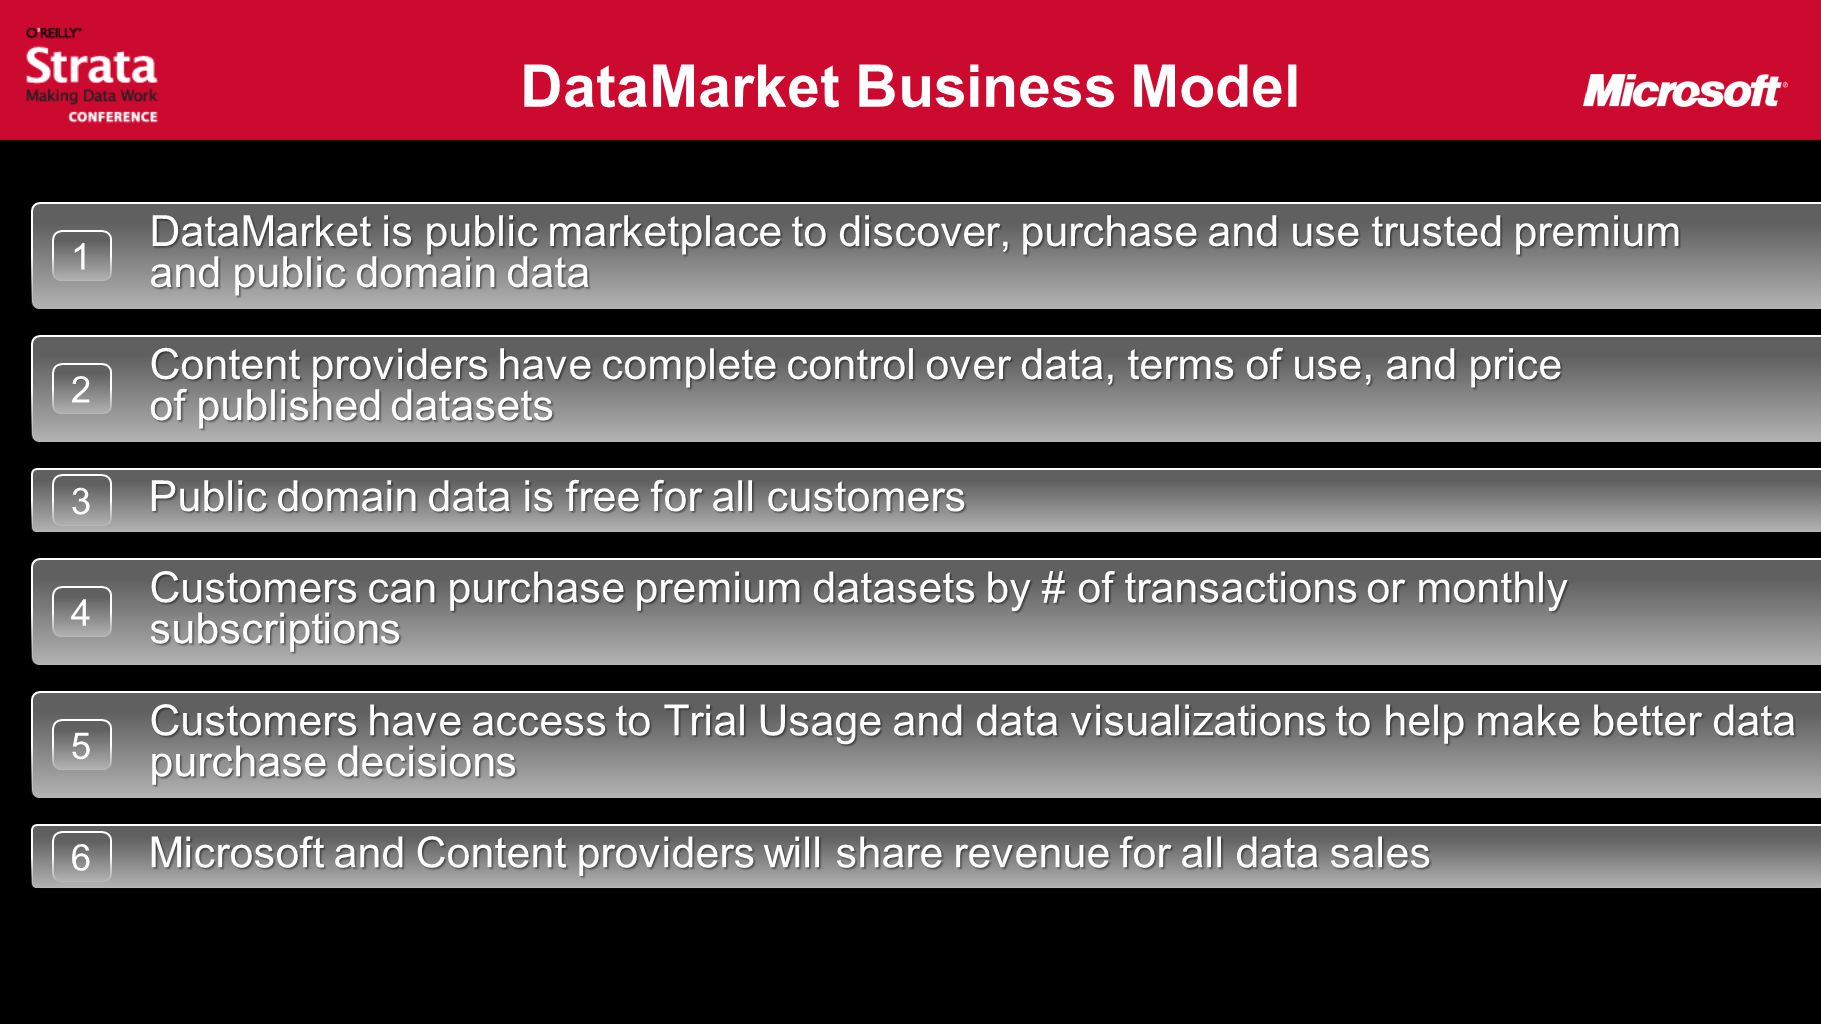 DataMarket Business Model DataMarket is public marketplace to discover, purchase and use trusted premium and public domain data 1 Public domain data is free for all customers 3 Content providers have complete control over data, terms of use, and price of published datasets 2 Customers can purchase premium datasets by # of transactions or monthly subscriptions 4 Customers have access to Trial Usage and data visualizations to help make better data purchase decisions 5 Microsoft and Content providers will share revenue for all data sales 6